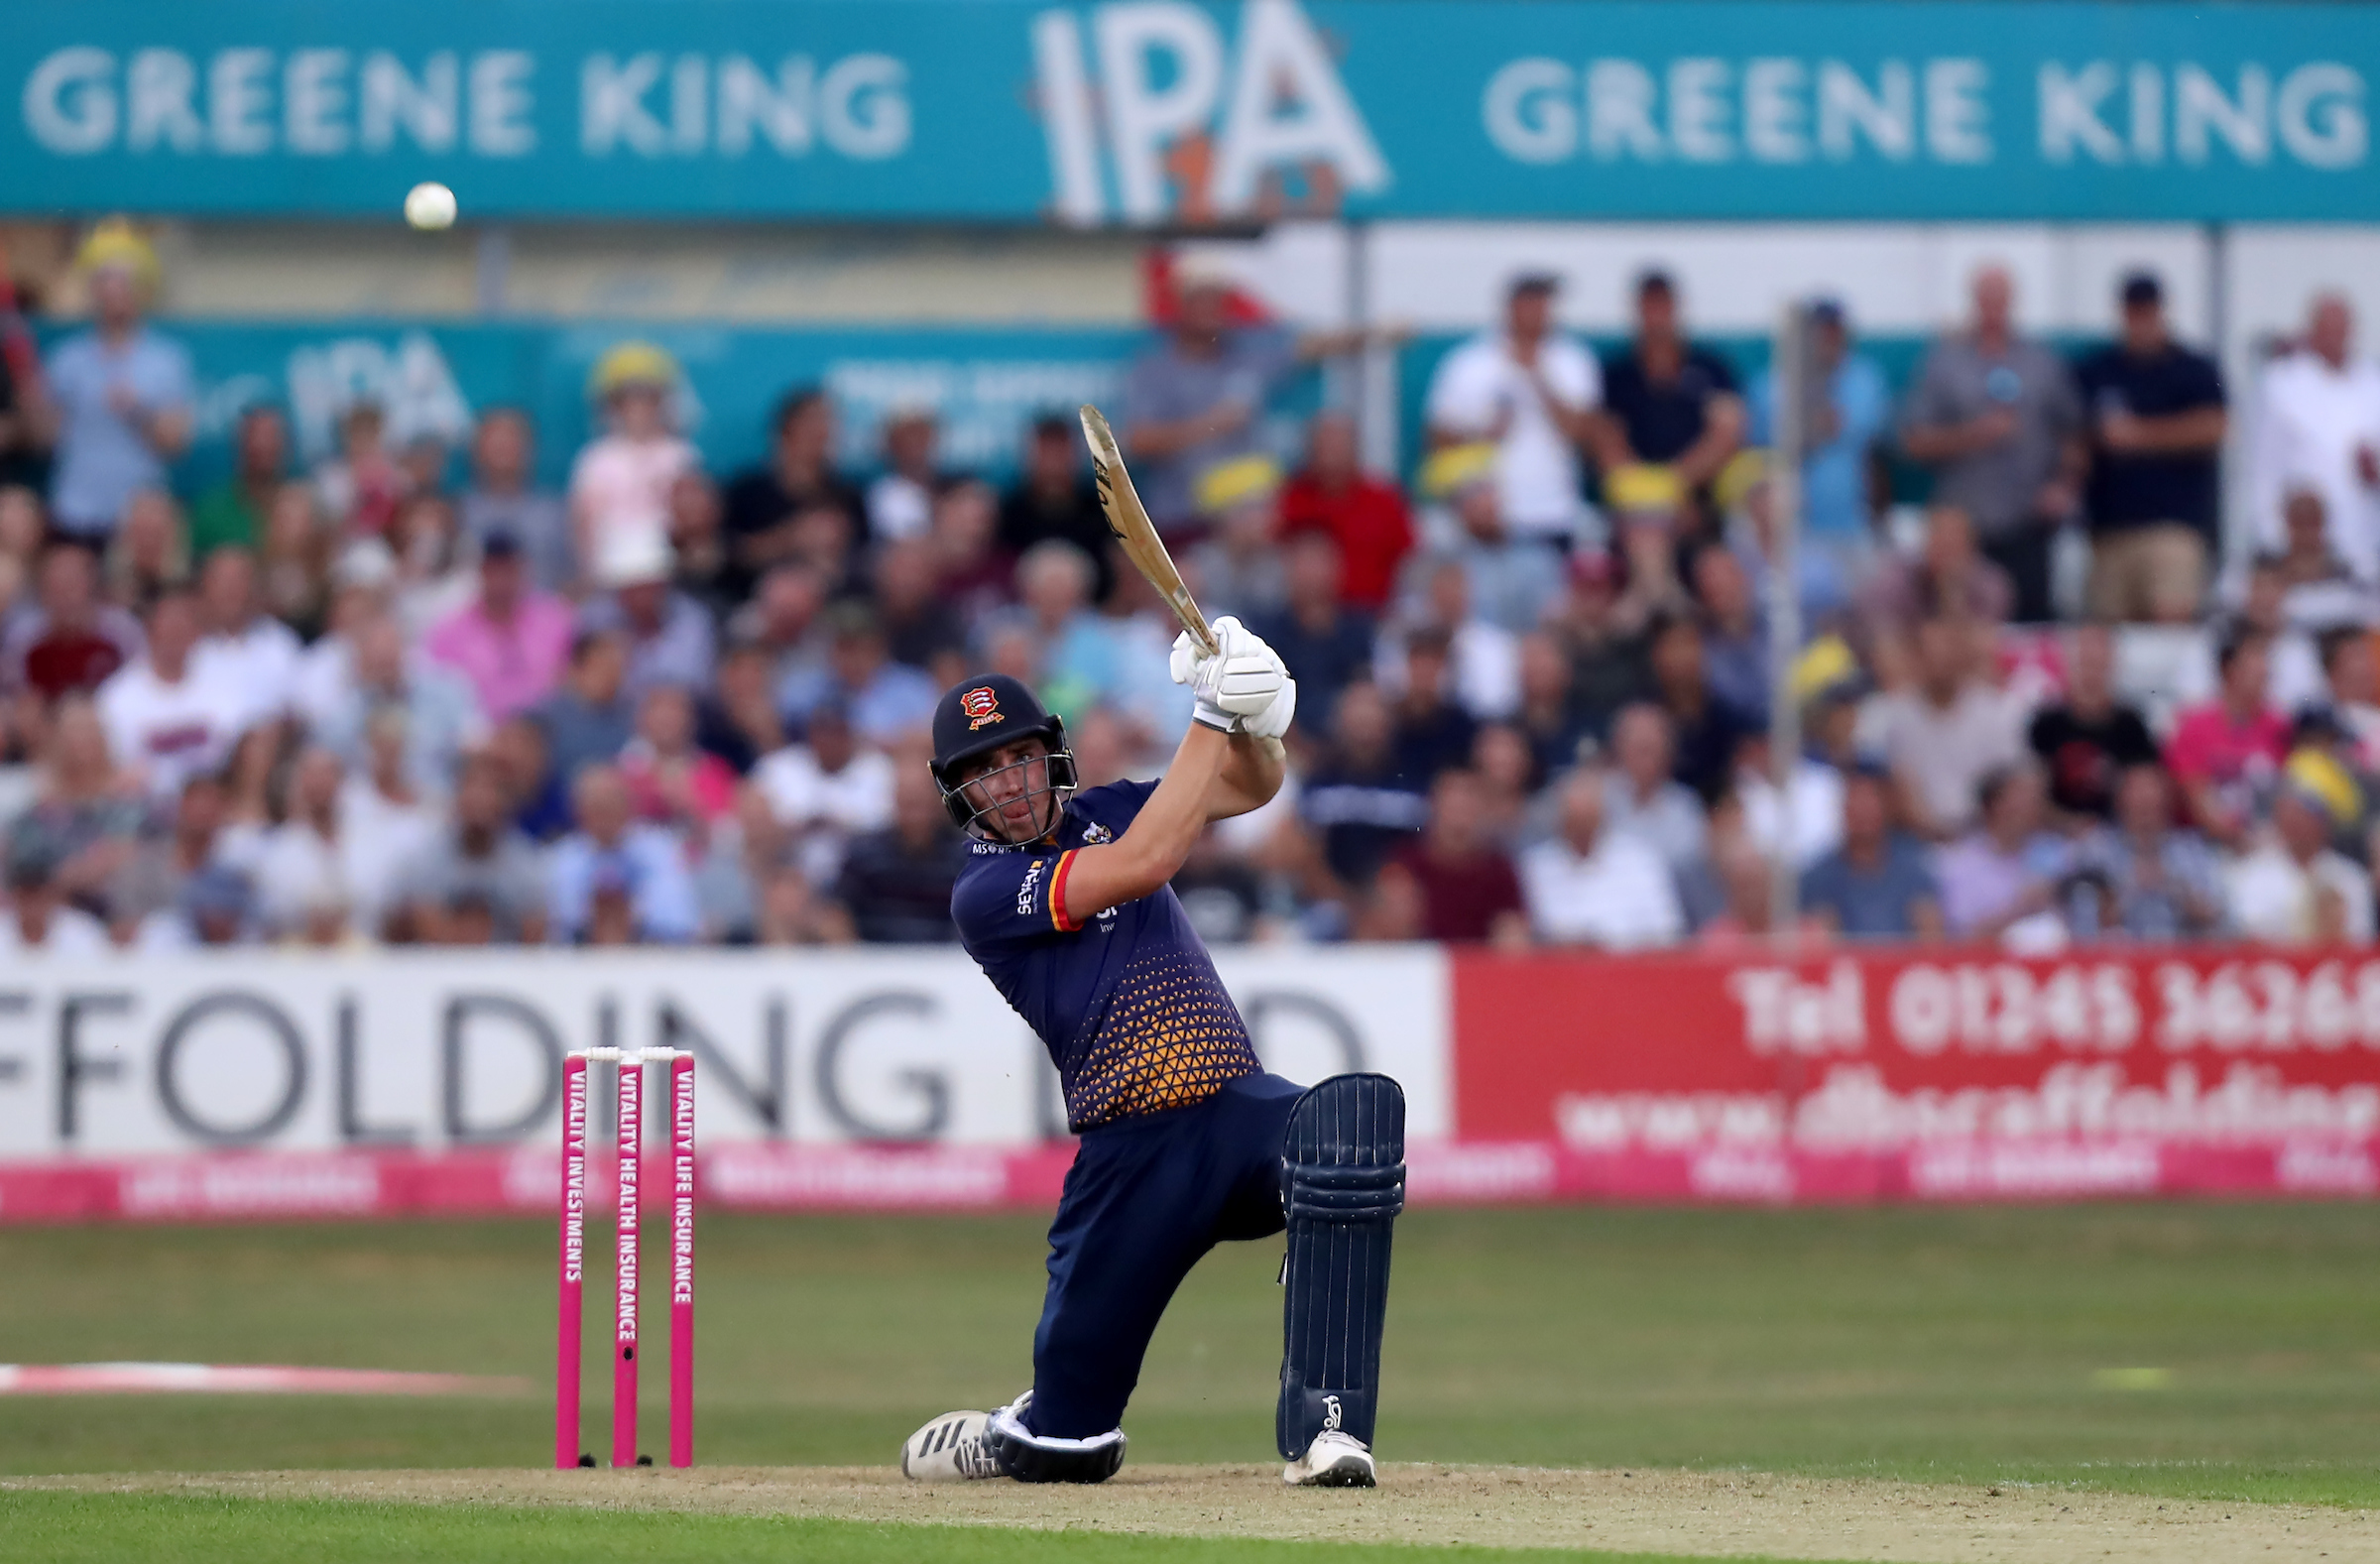 Daniel Lawrence adds runs for Essex Eagles in their Vitality Blast T20 game against Hampshire. Picture: Gavin Ellis/TGS Photos